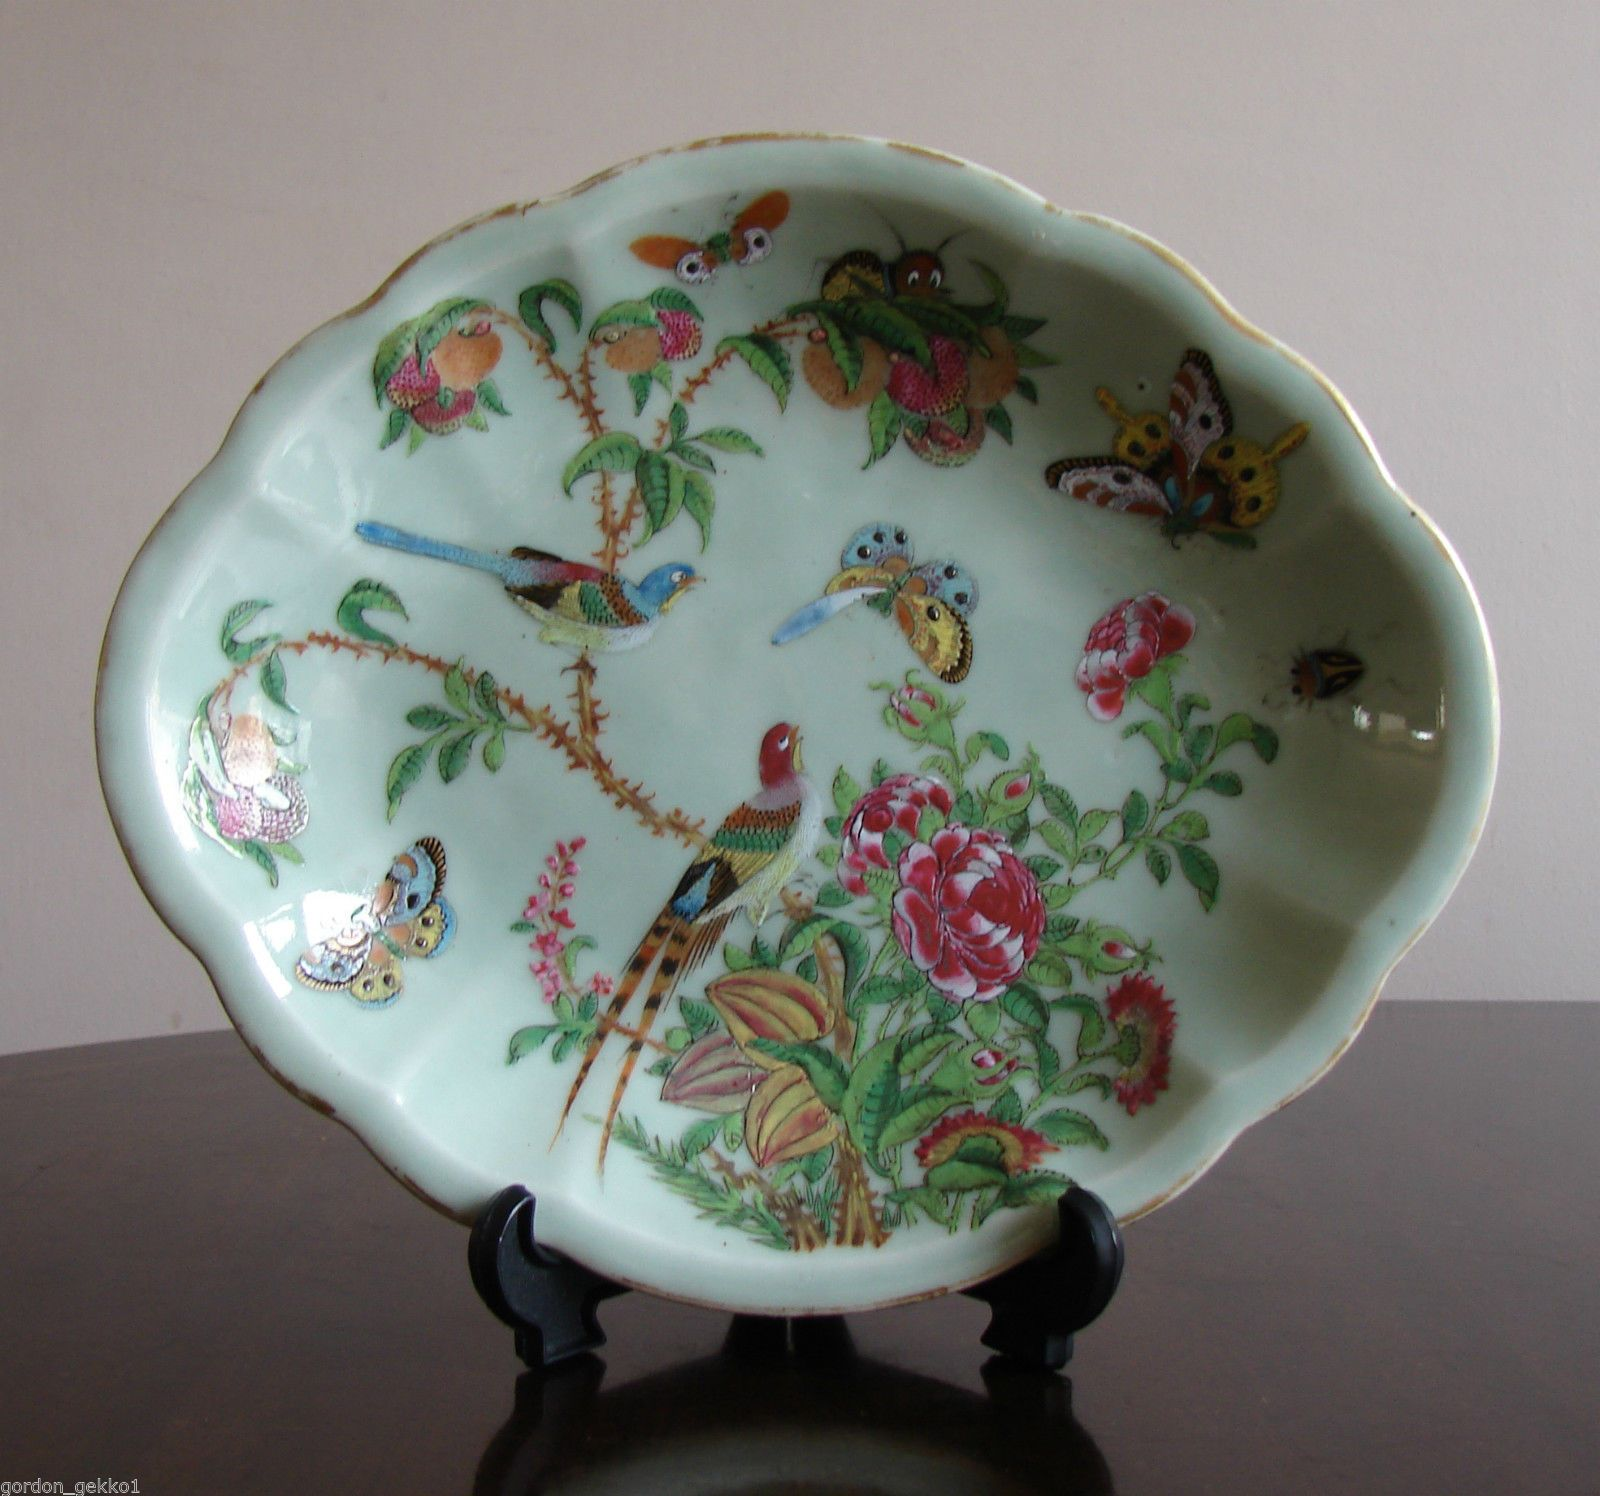 Great old Chinese Famille Rose plate 1 of 7 5 1//2/""